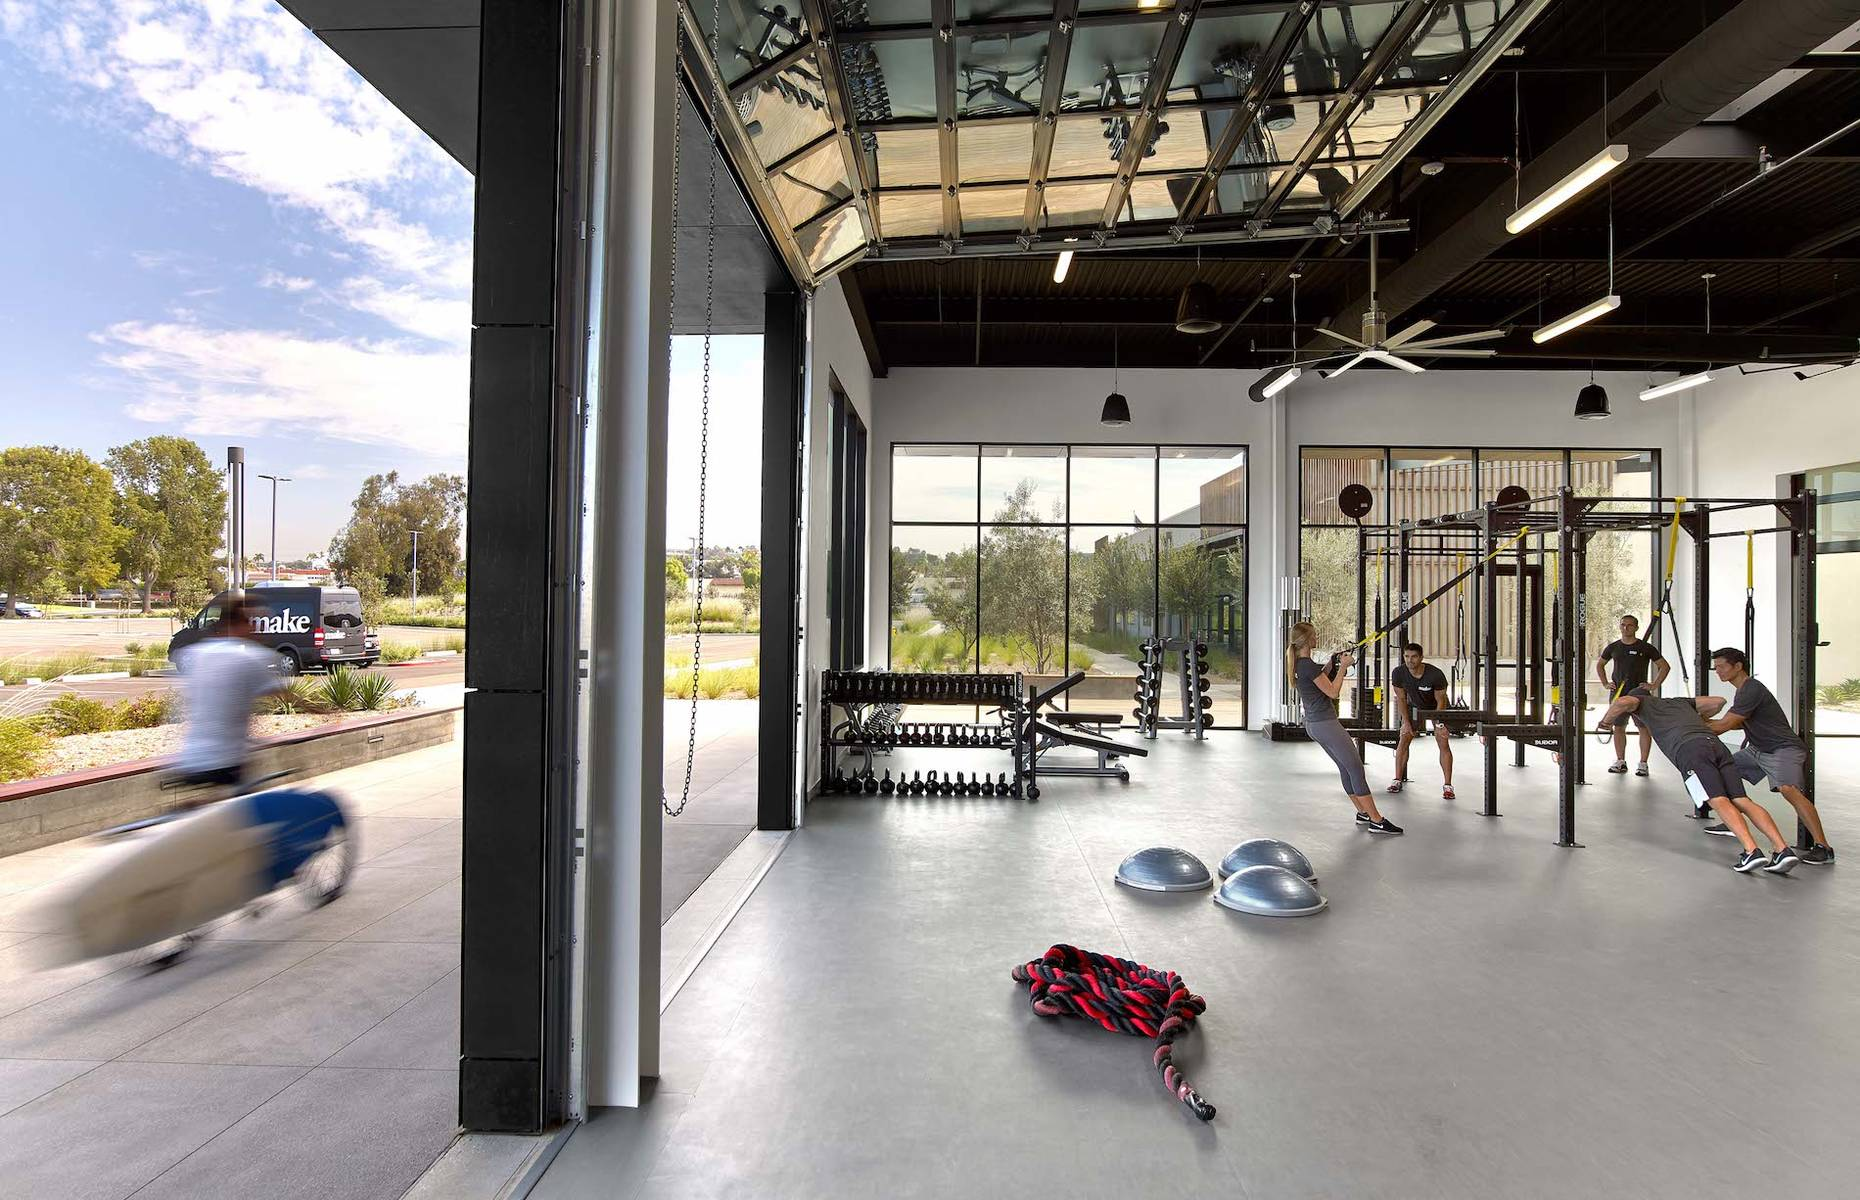 Make carlsbad fitness center photo by eric laignel(10)